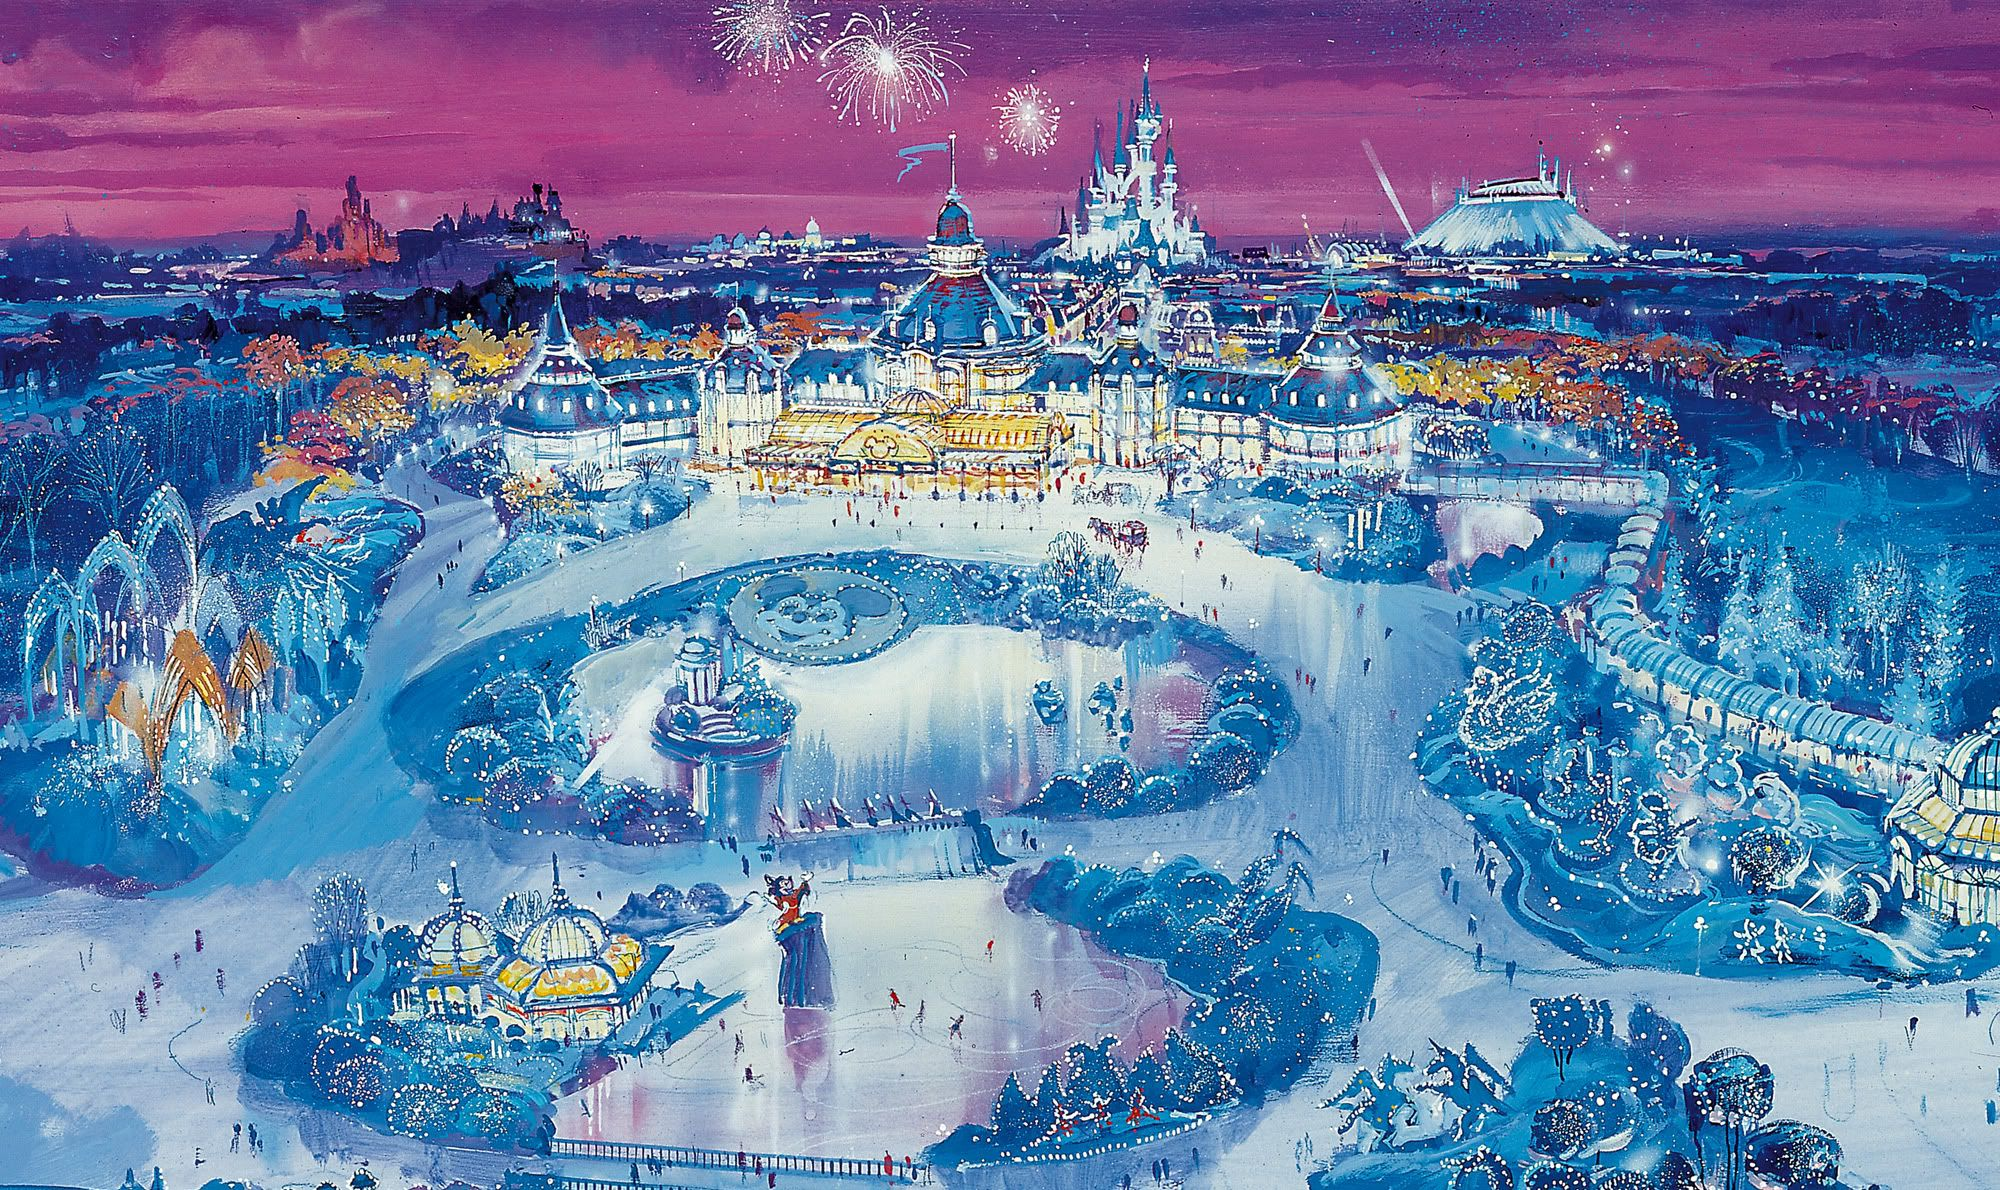 Disneyland Paris Concept Art